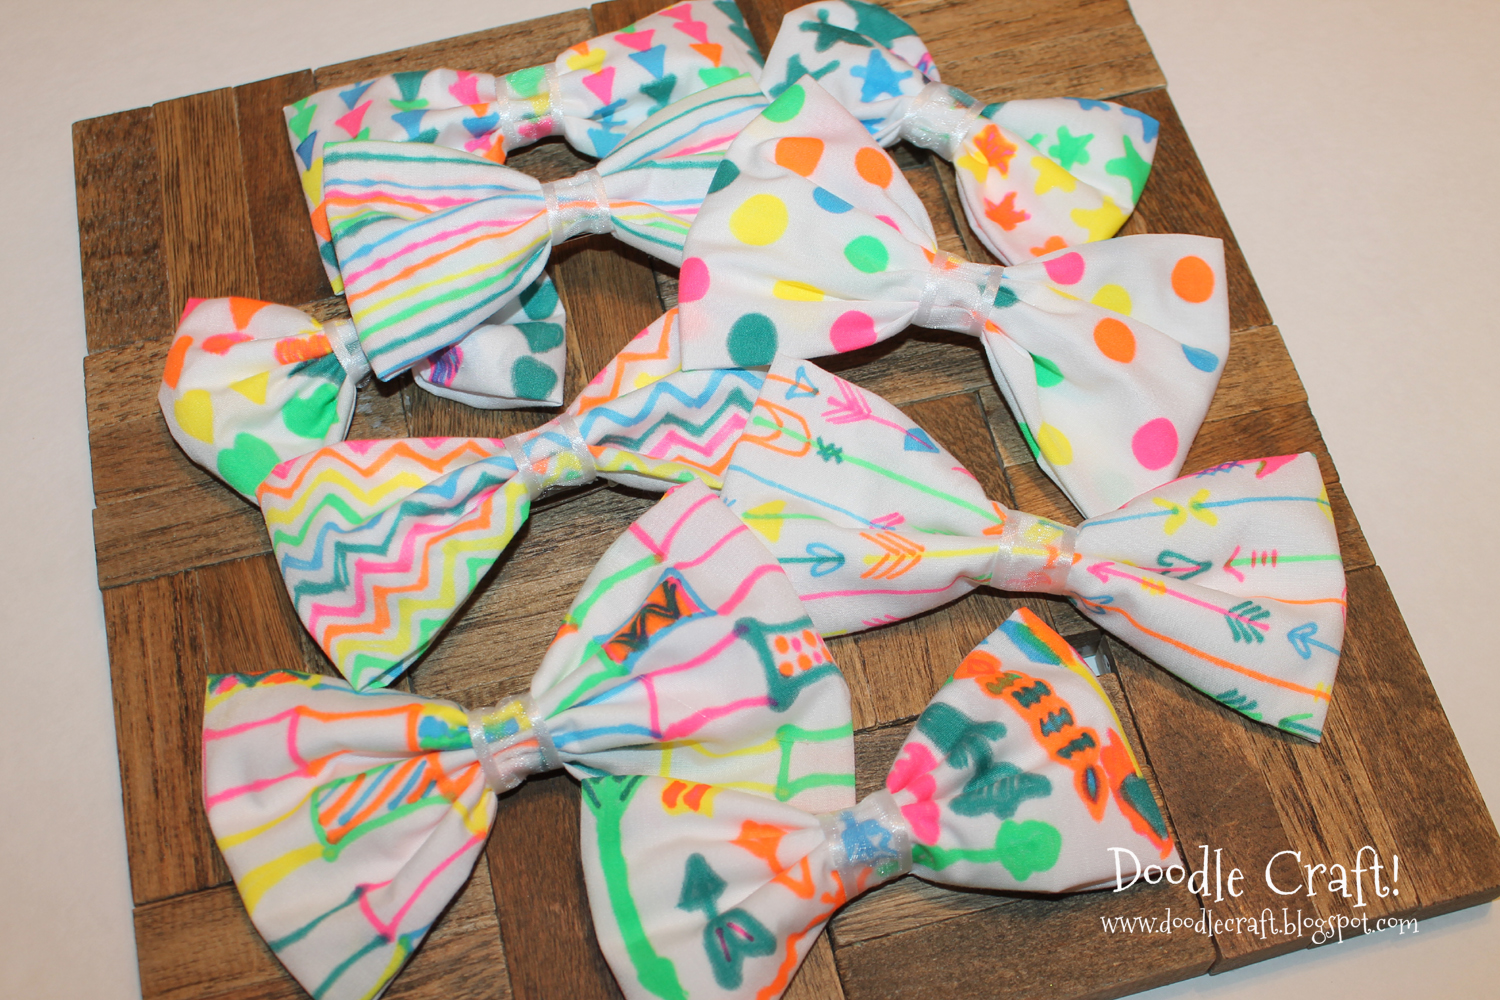 Doodlecraft neon sharpie hair bows hot glue gun week for Arts and crafts for a 1 year old